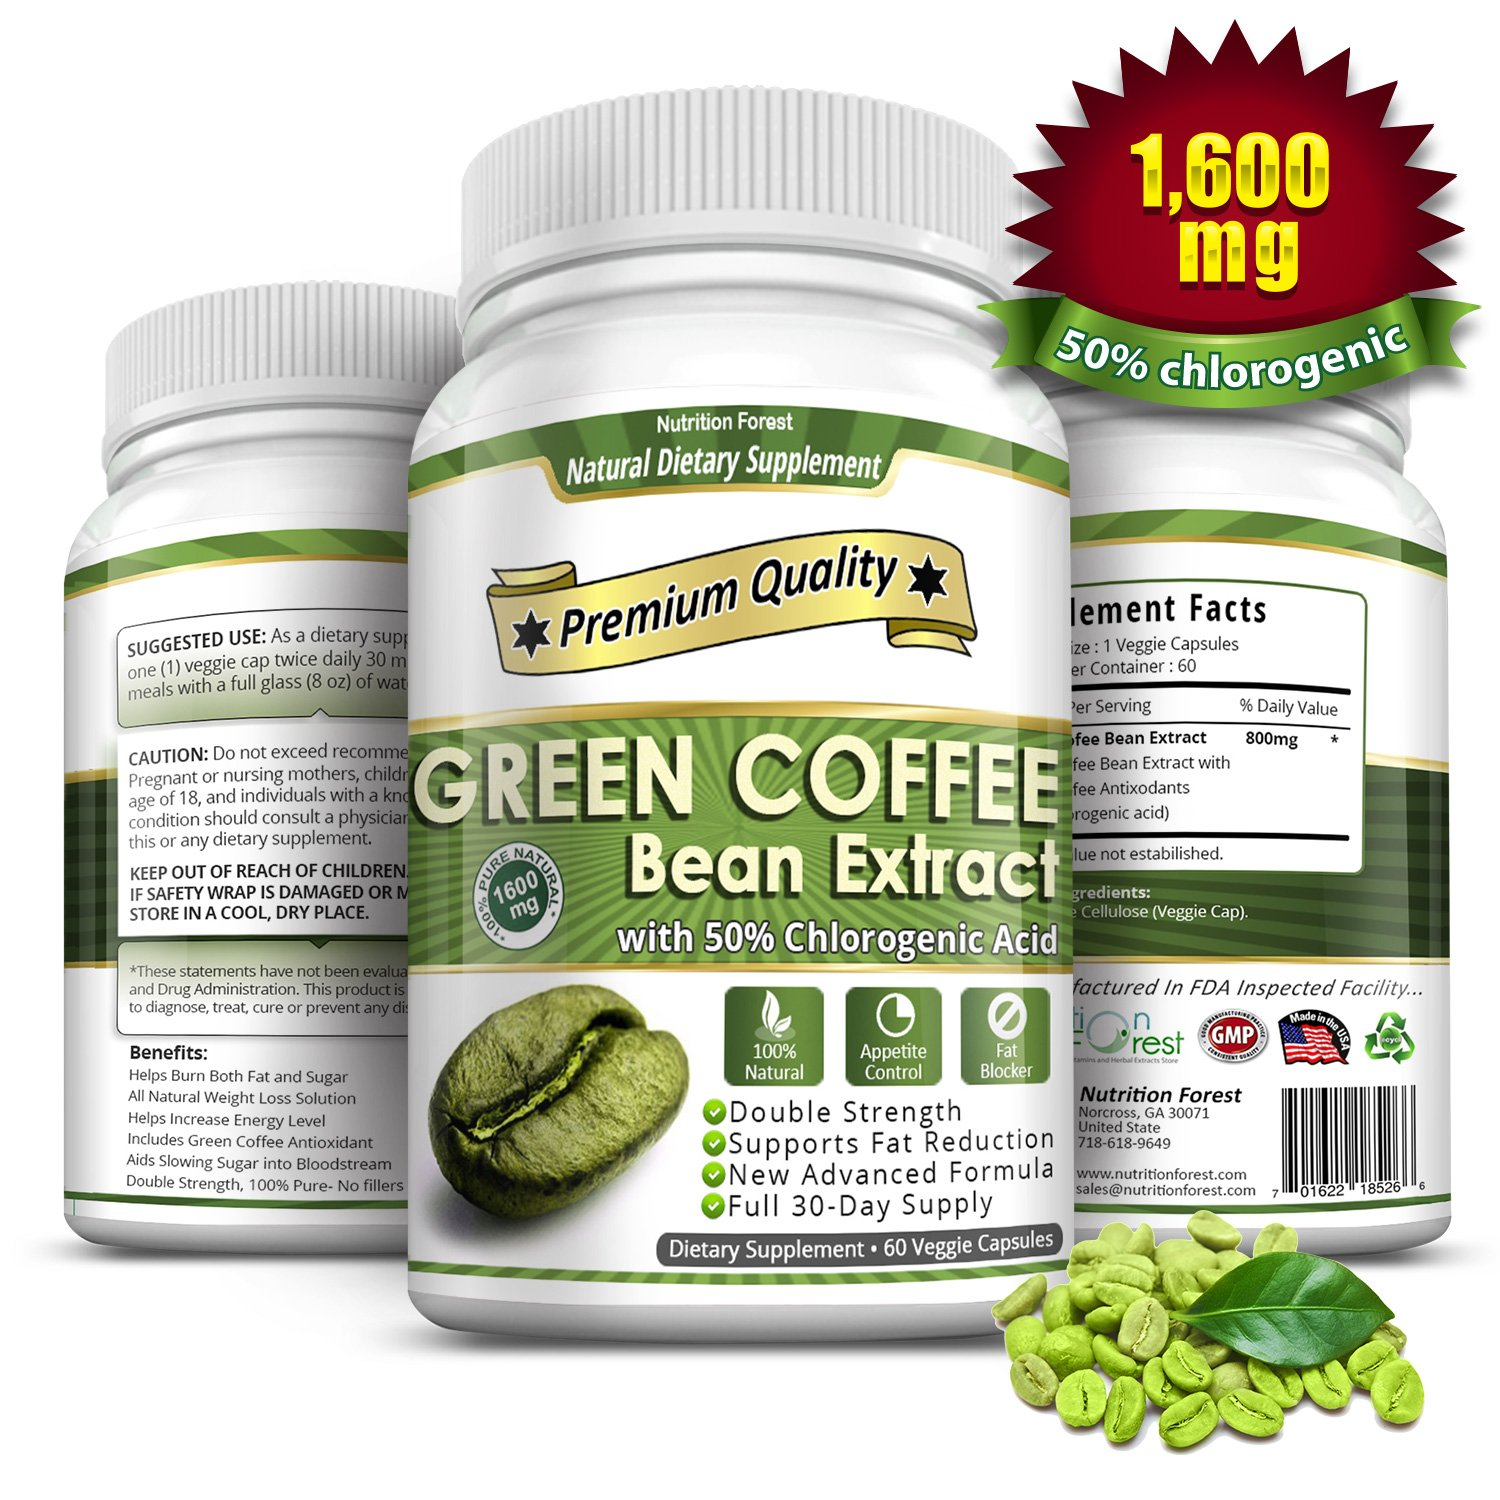 Green Coffee Bean Extract 1600mg with 50% Chlorogenic Acids * 60 Veggie / Gluten Free Capsules for Weight Loss